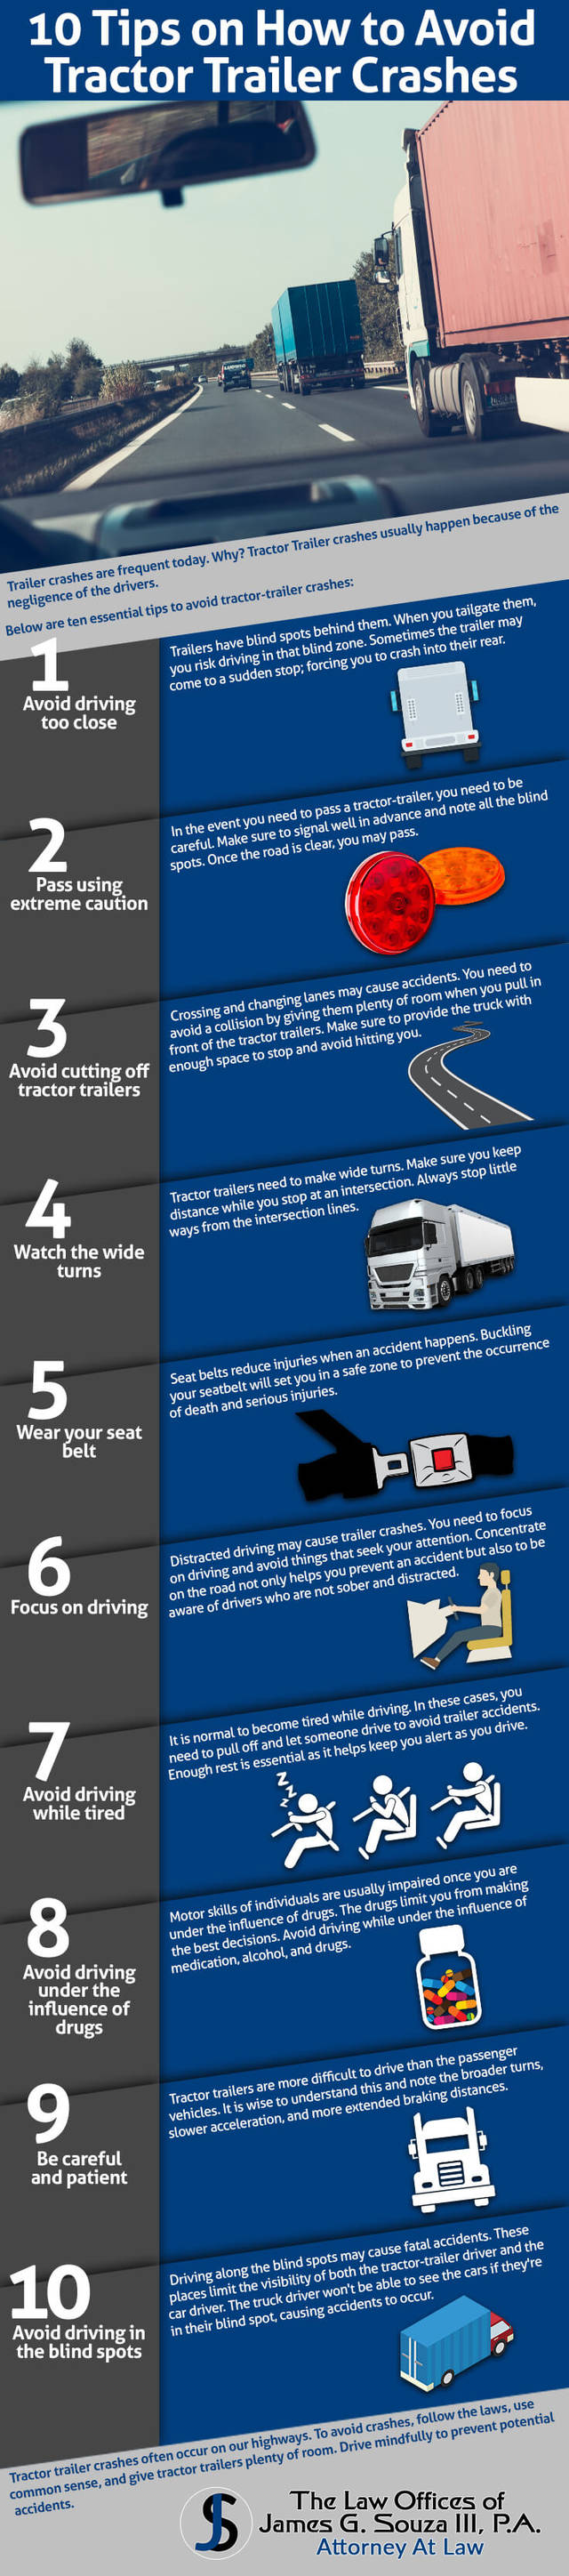 10 tips how to avoid tractor trailer crashes infographic